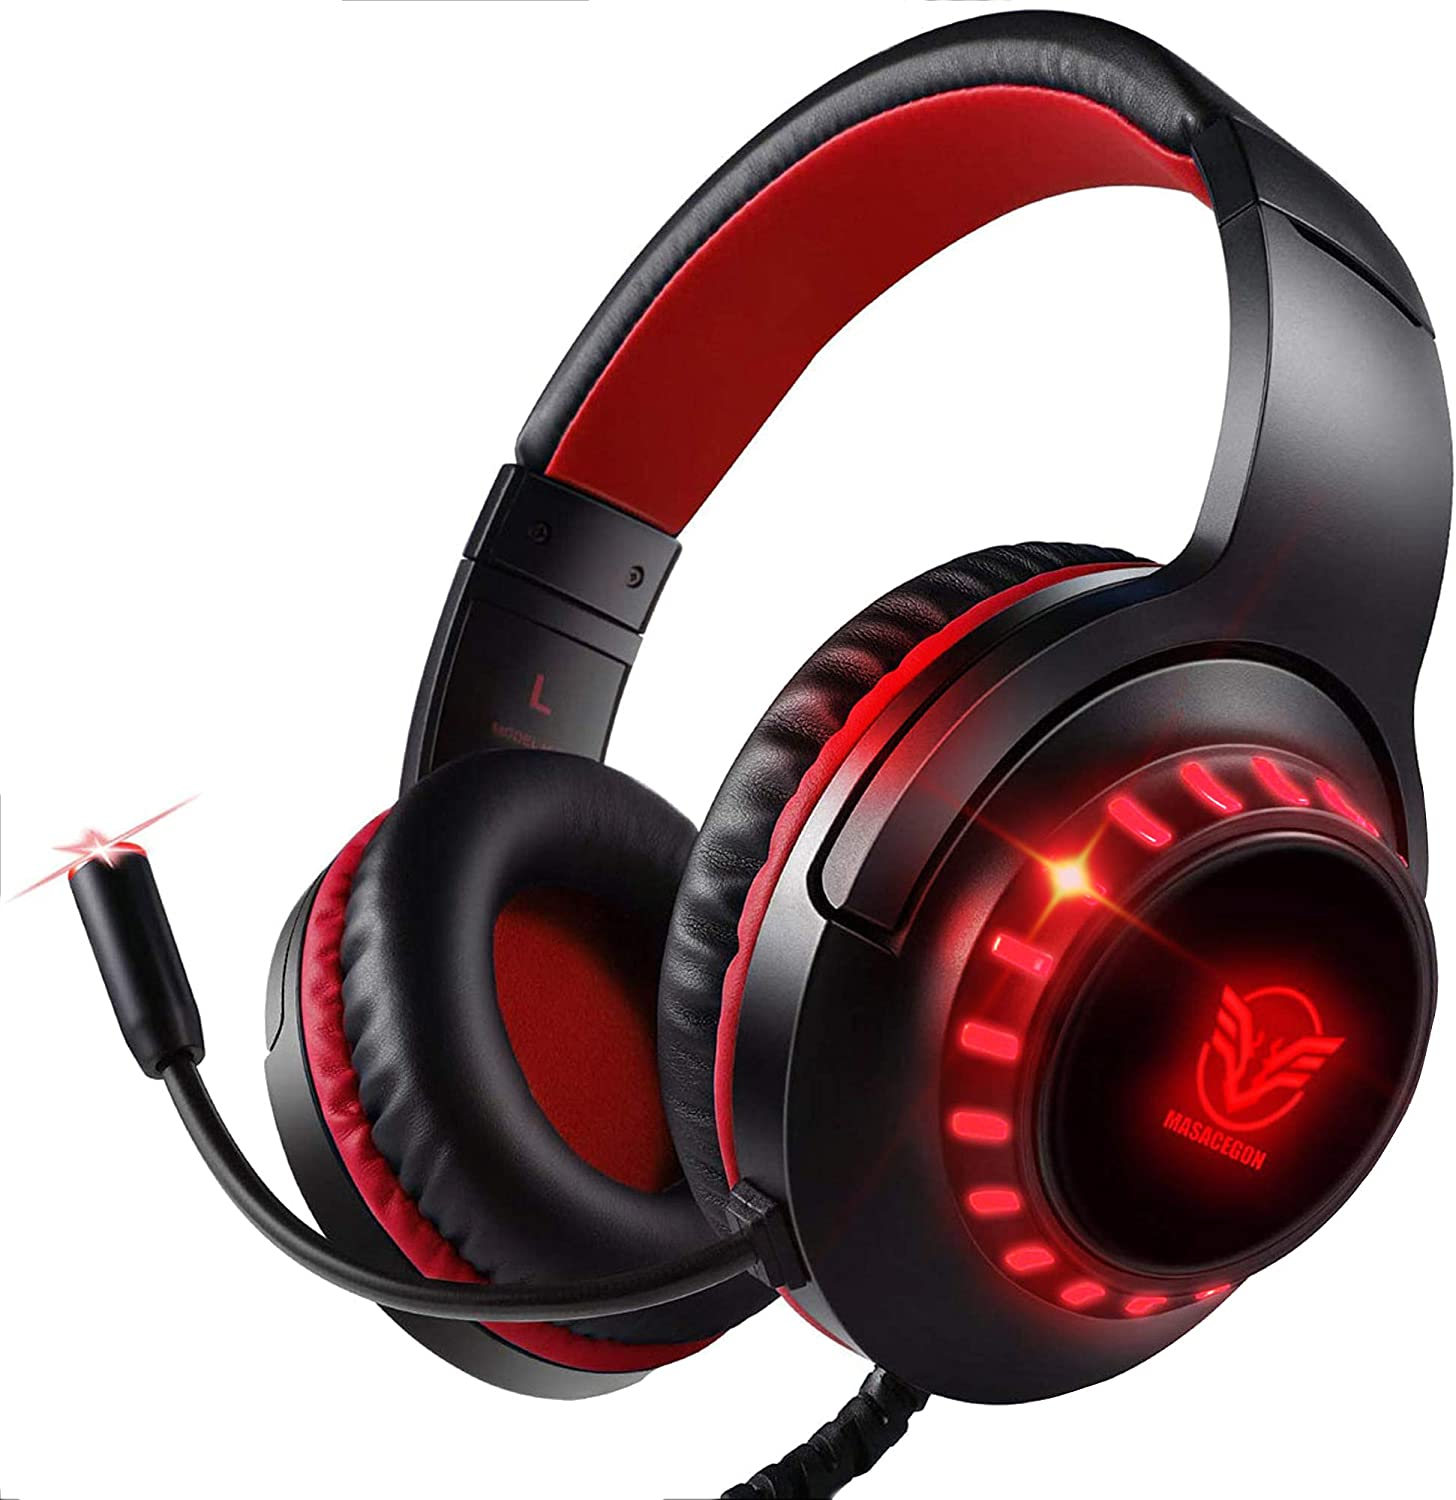 Pacrate Gaming Headset Max 50% OFF with Microphone ! Super beauty product restock quality top! PC Laptop PS4 for